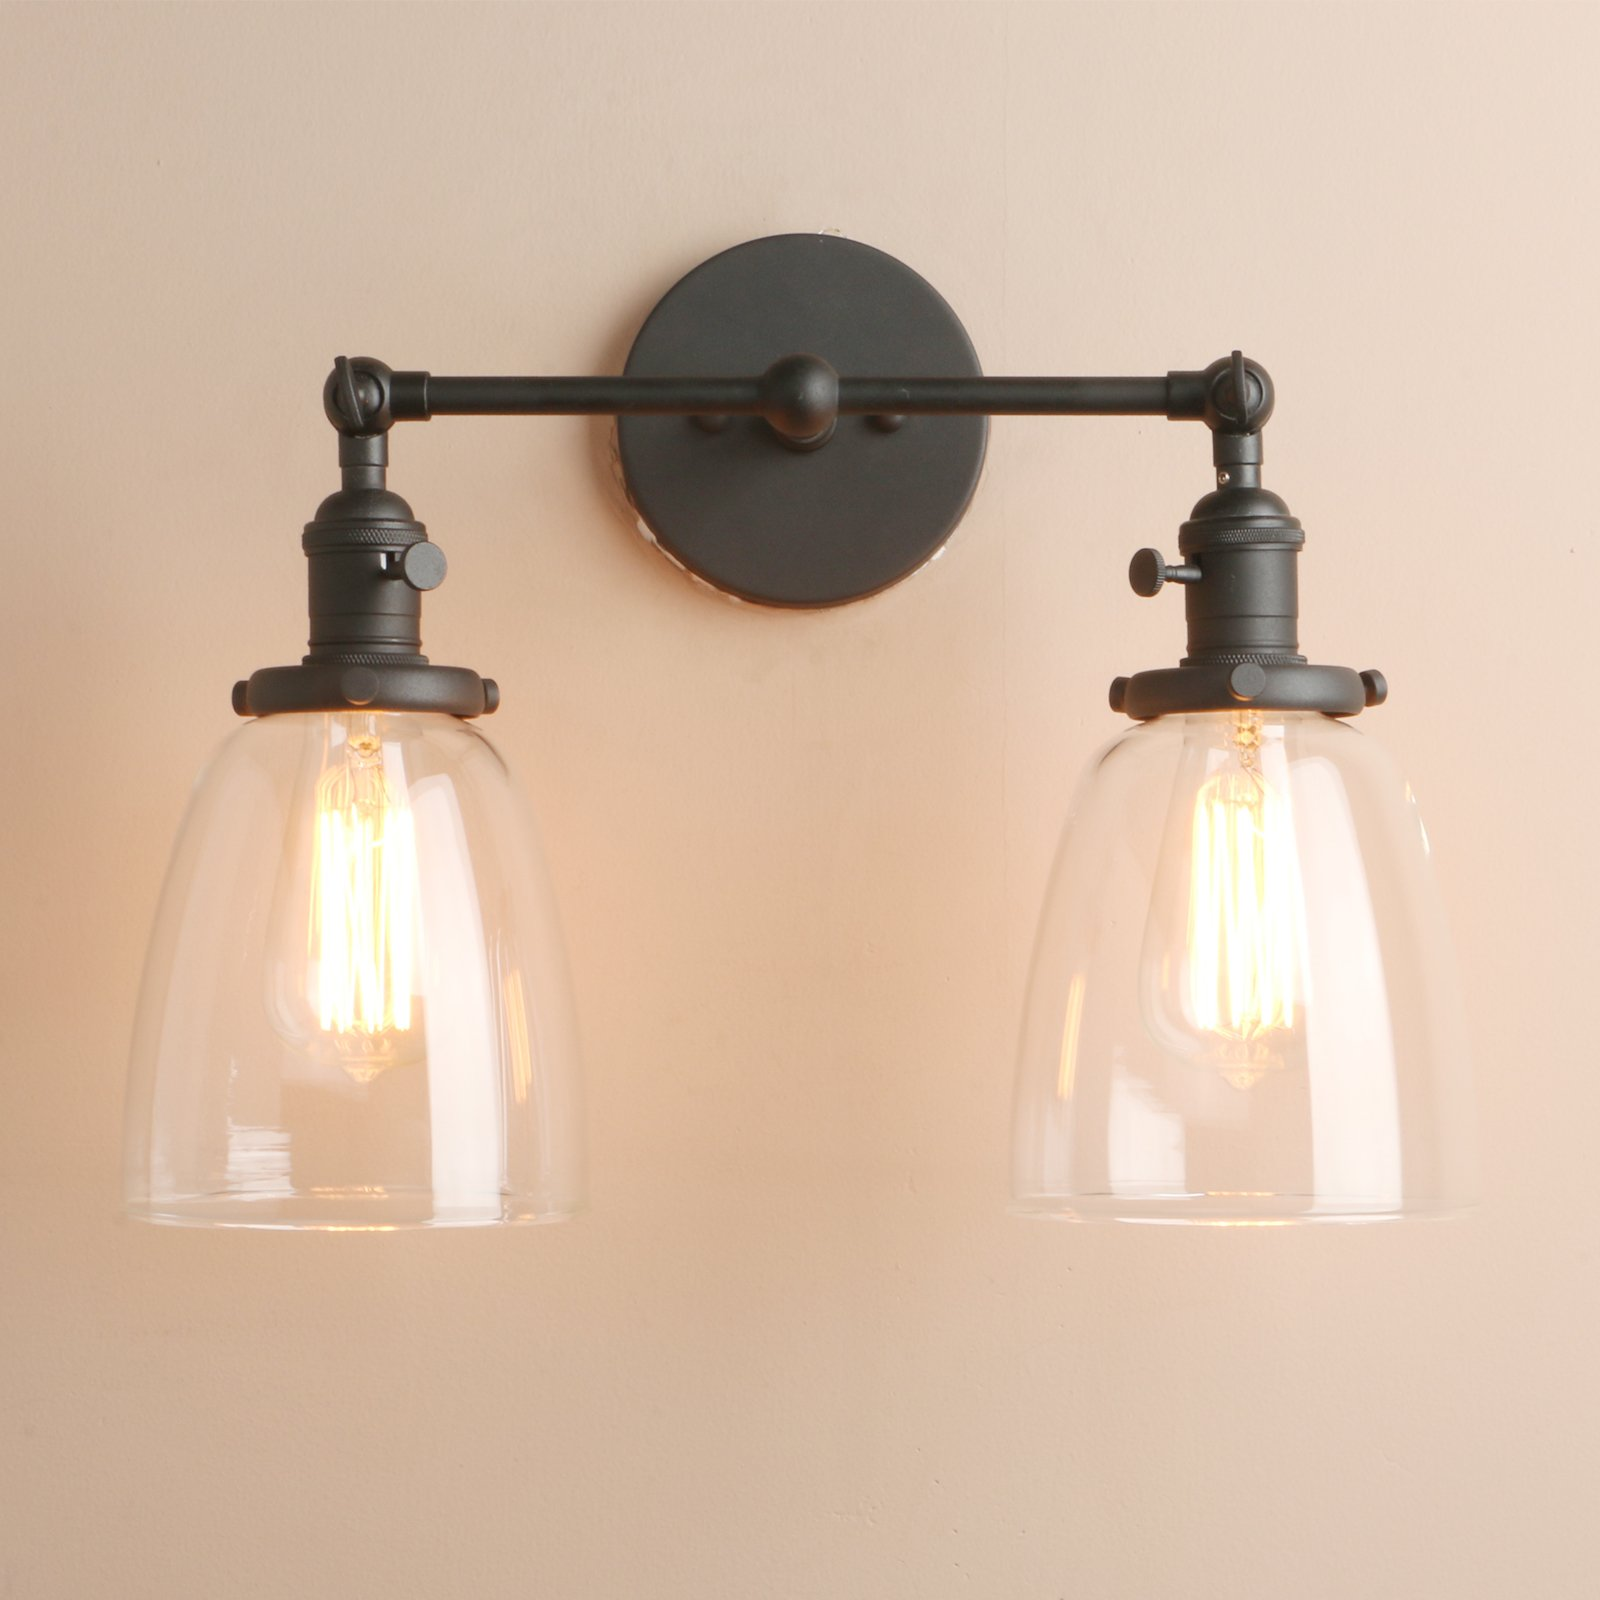 Pathson 2 Light Wall Sconce, Vintage Style Industrial Wall Light Fixtures with Oval Cone Clear Glass Shade Dark Steel Finished